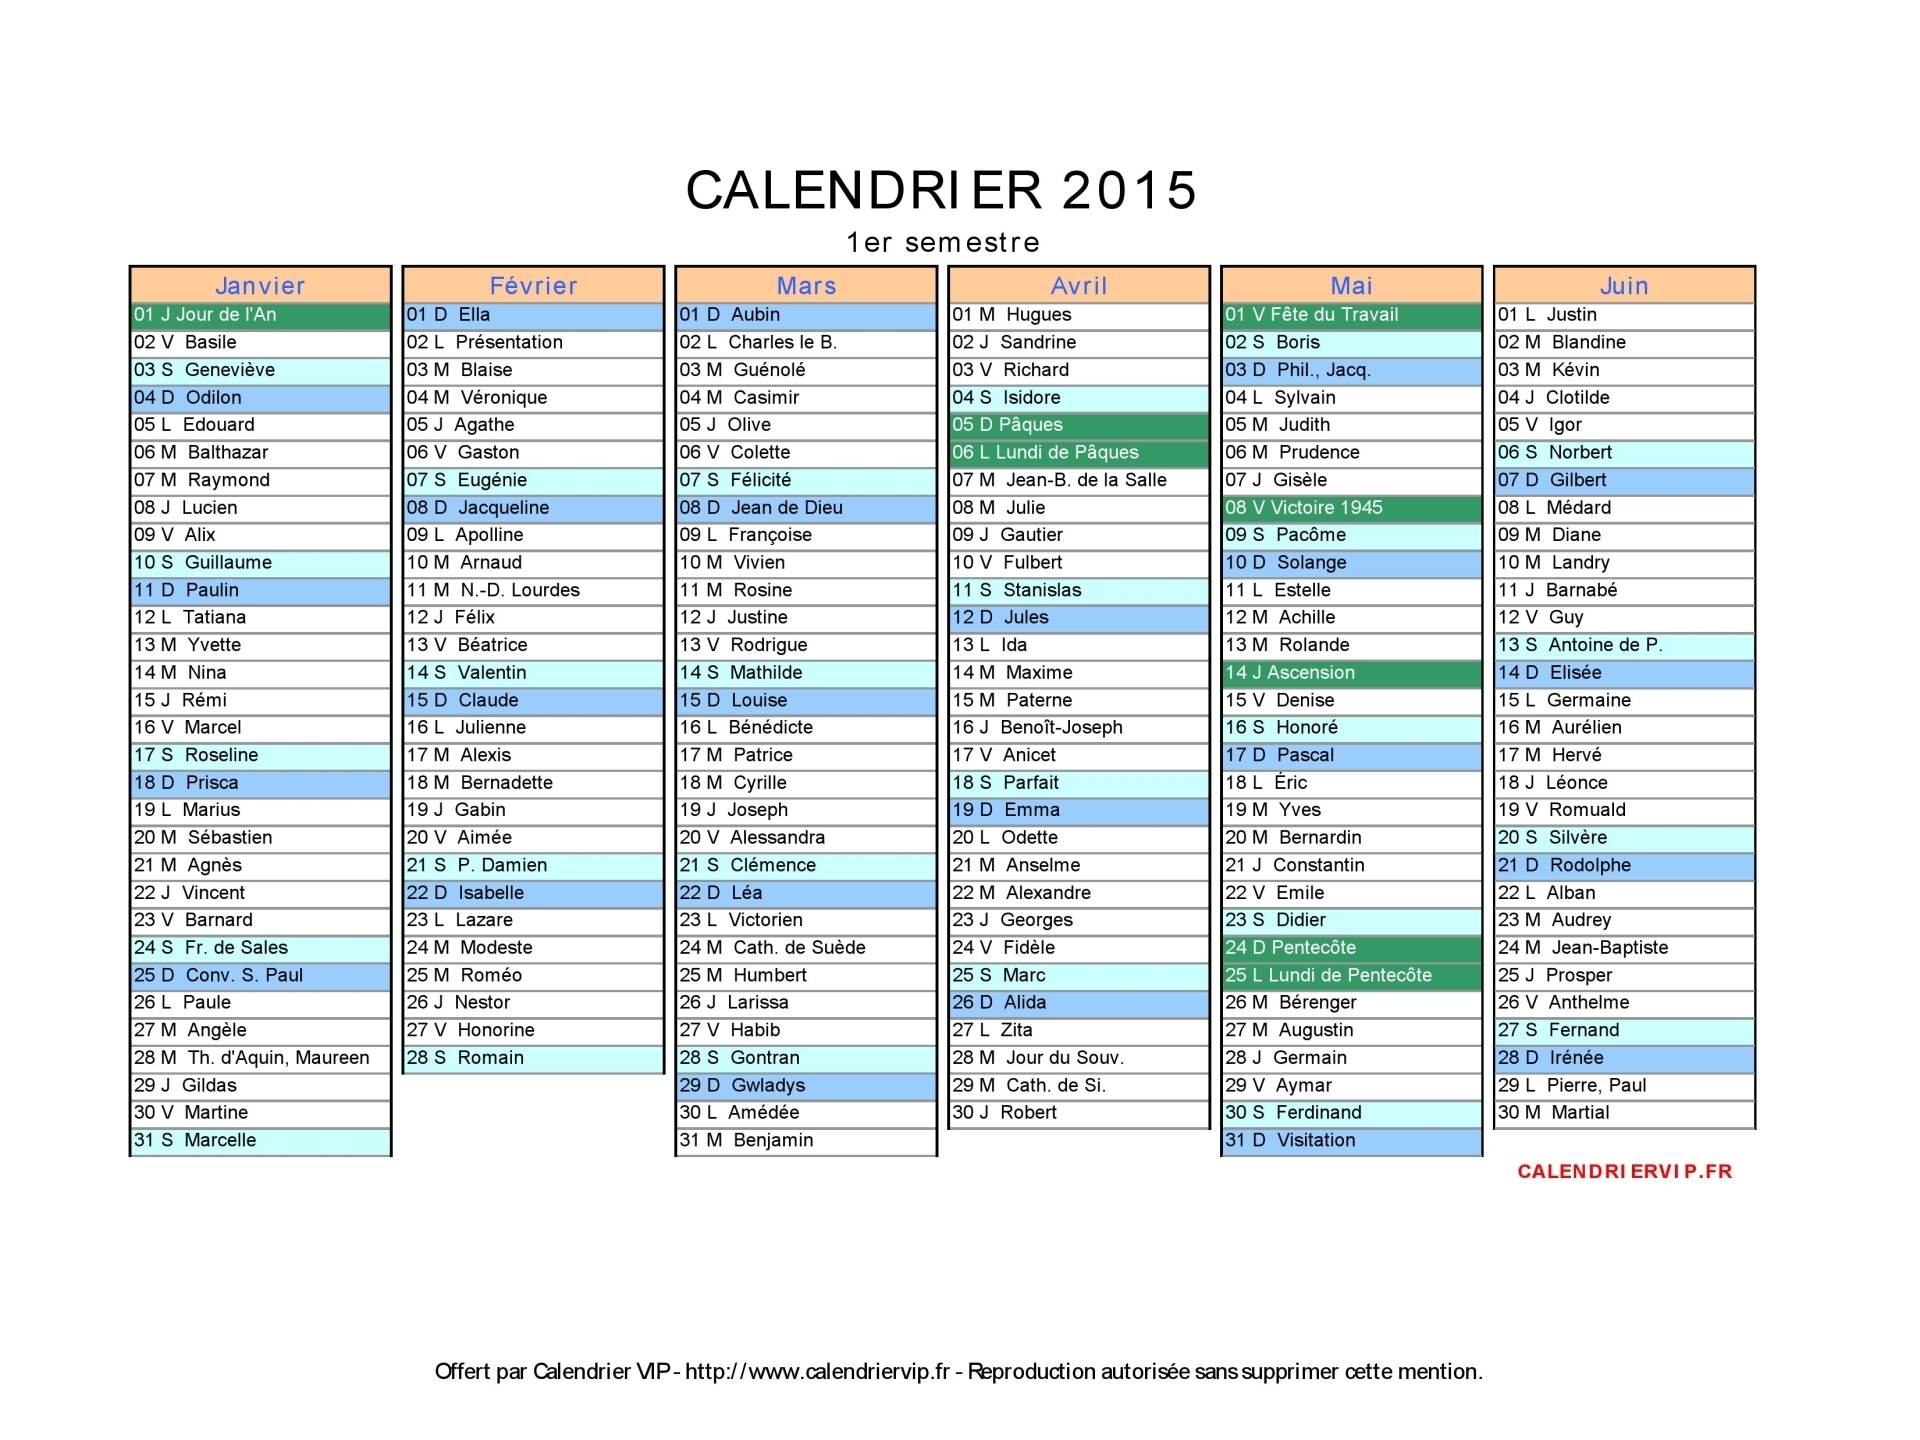 Calendrier excel 2015